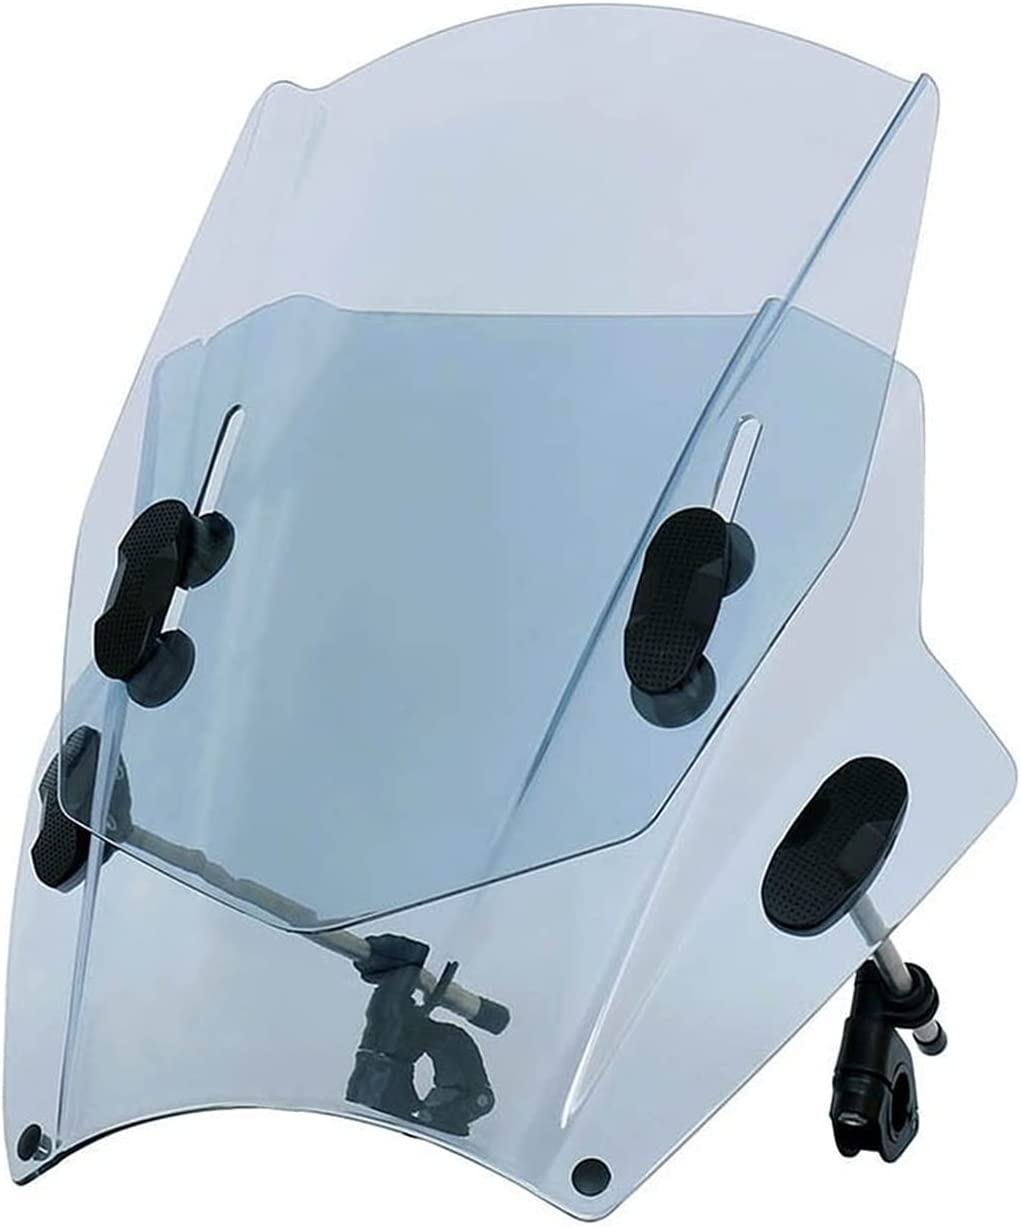 Motorcycle Safety and trust Sale Special Price Windscreen Windshield Universal